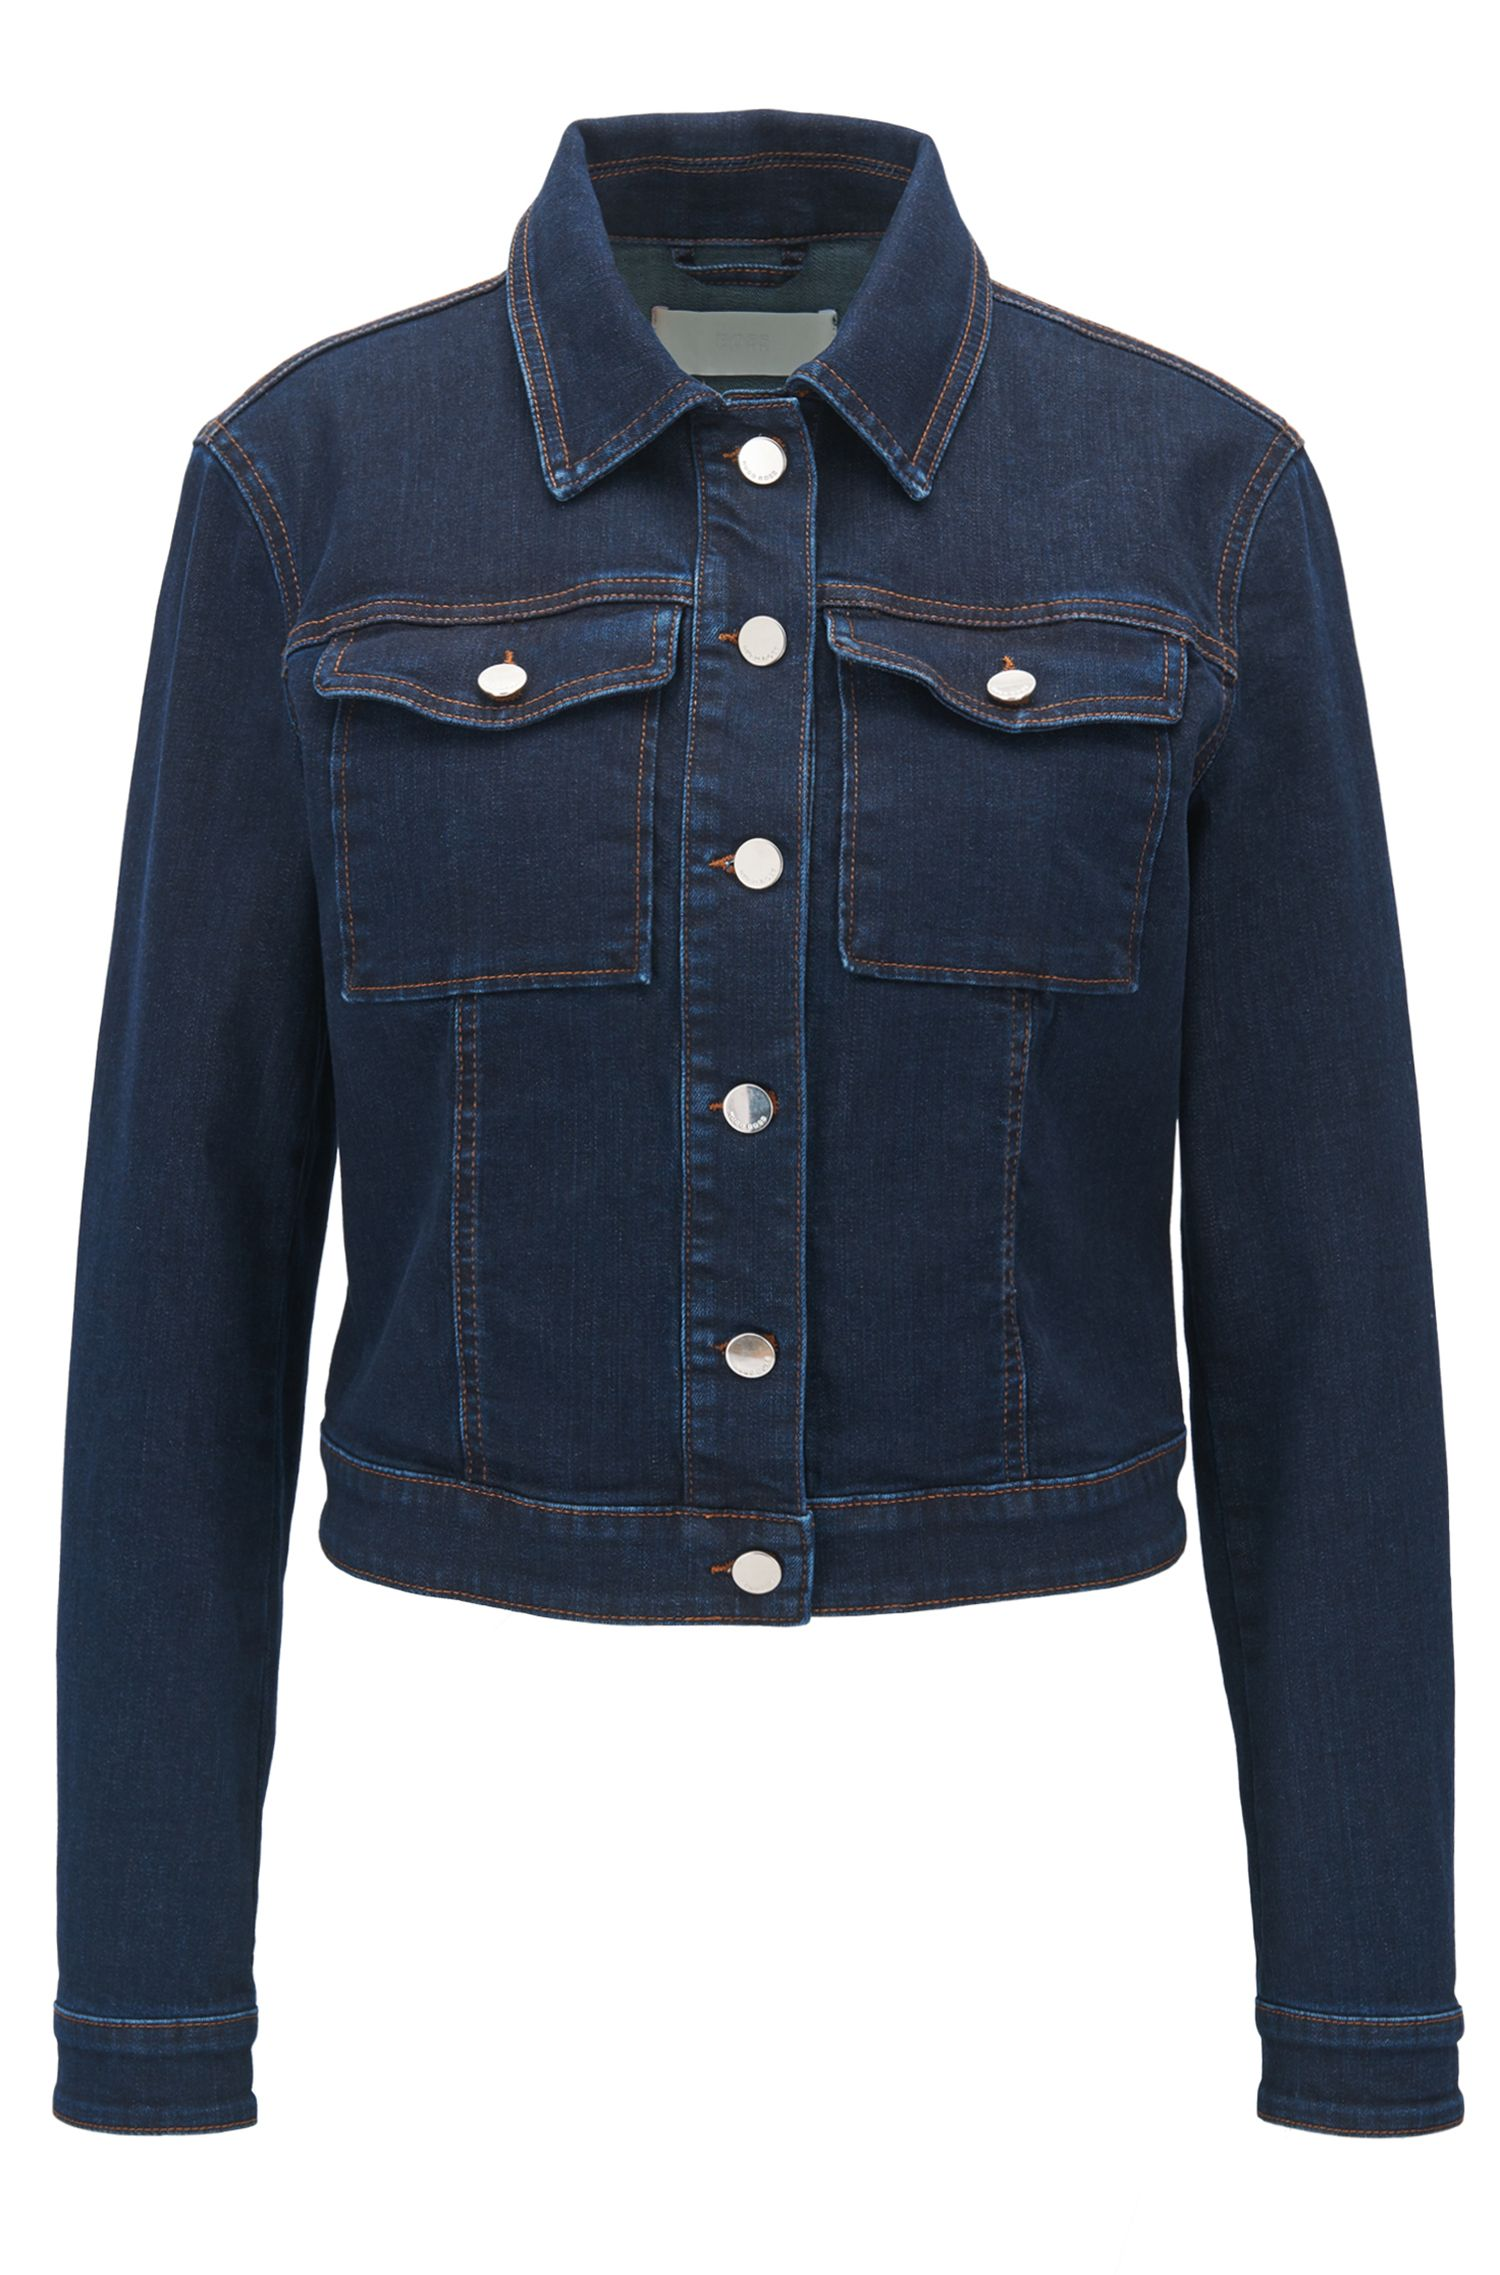 Denimjas van comfortabel stretchdenim